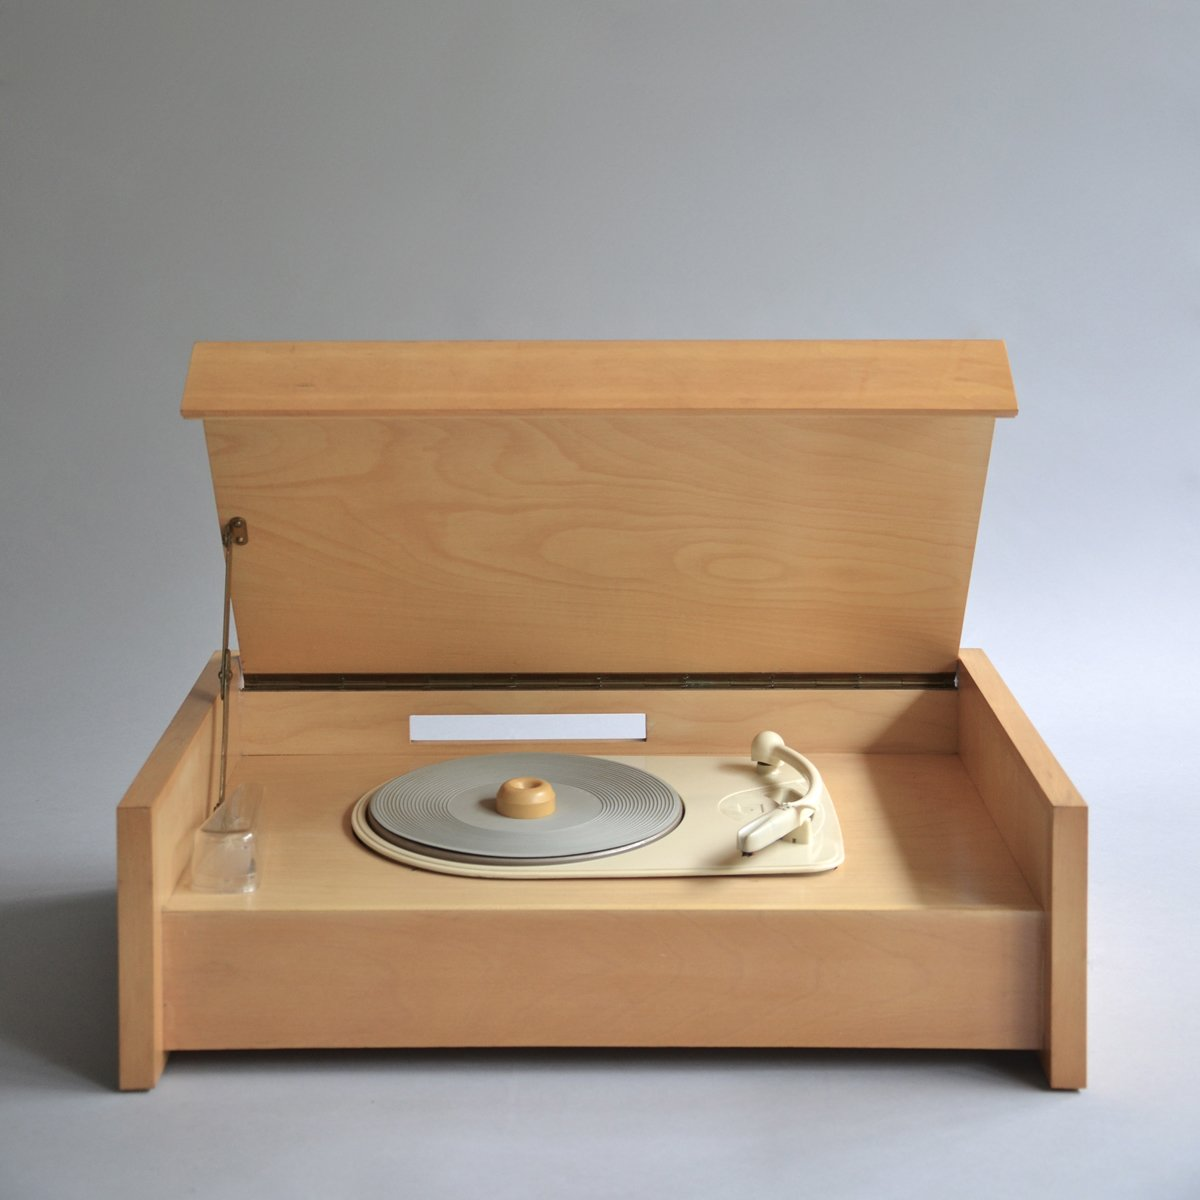 "An earlier version of the record player and one of a foundational group of designs produced in 1955, the inaugural year of Braun Design. Braun G 12 (Valvo chassis) by Hans Gugelot, on sale for £650.  ""Although production of Gugelot's G series continued into the early '60s, this vocabulary was soon eclipsed by Ram's development of a less romantic, more affirmatively industrial approach,"" writes Kapos.  Sound Style from Shop the Vintage Braun Catalog from Your Web Browser"